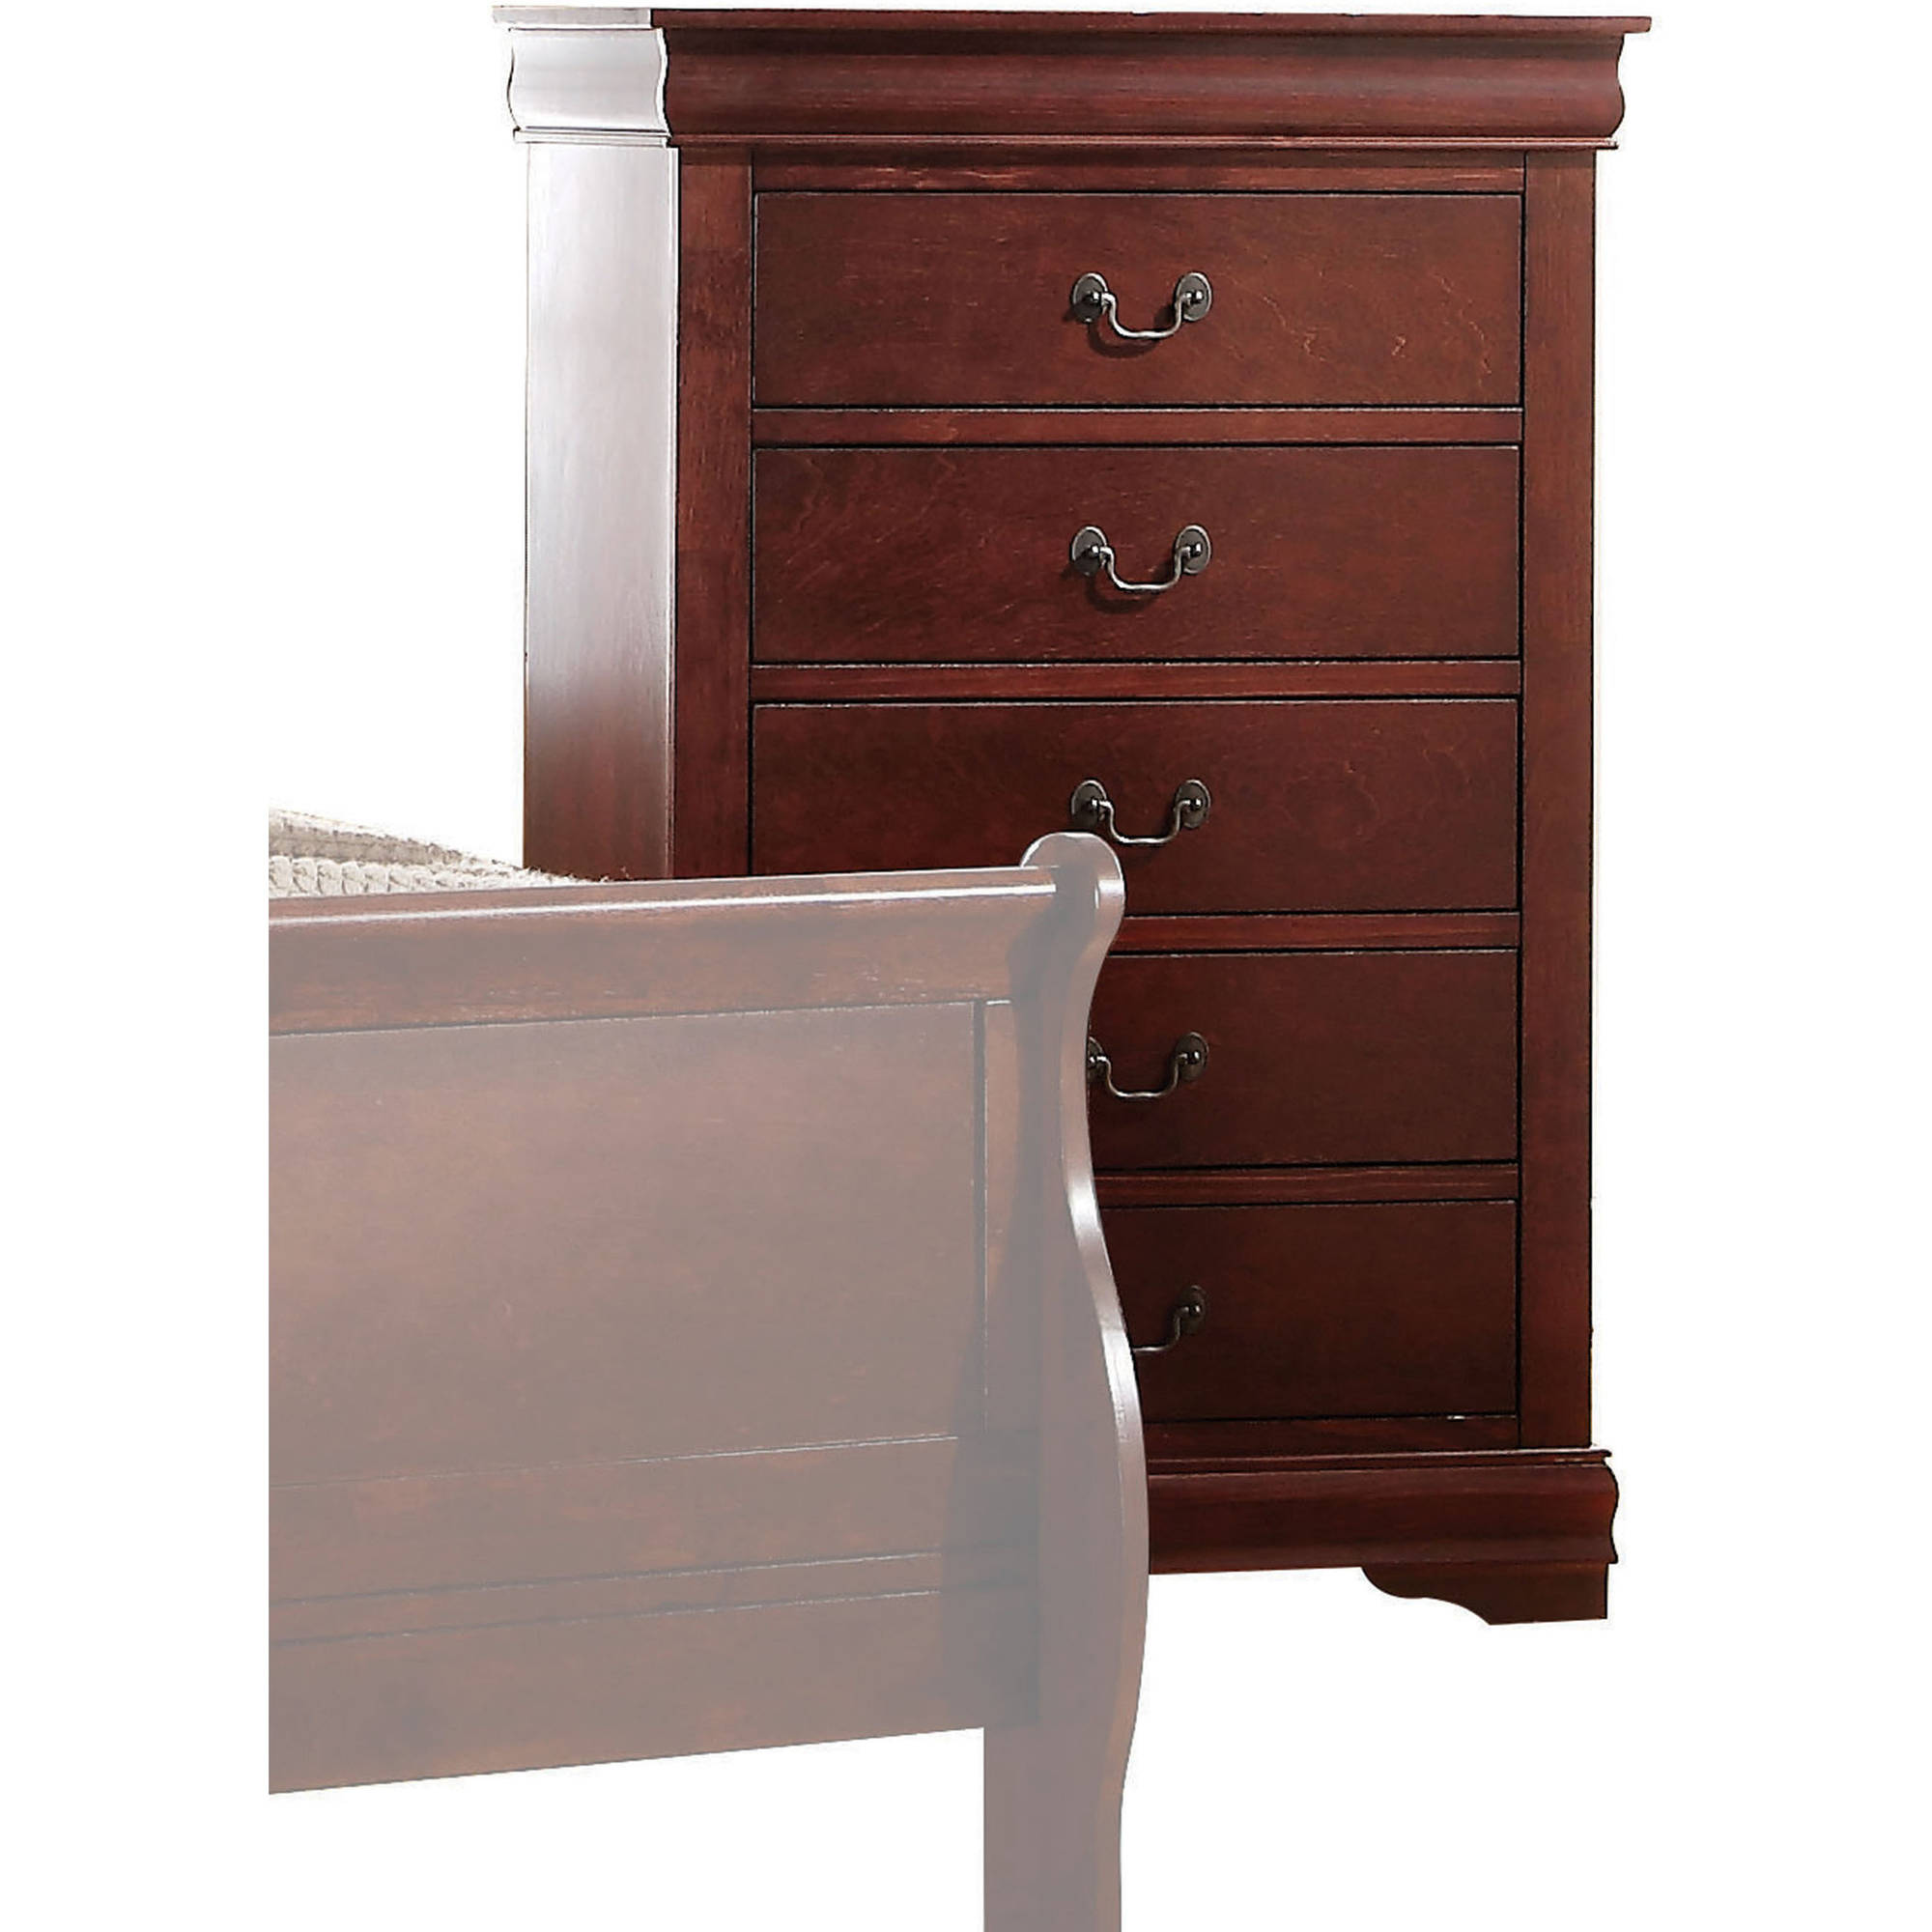 Acme Furniture Louis Philippe Cherry Chest with Five Drawers by Acme Furniture